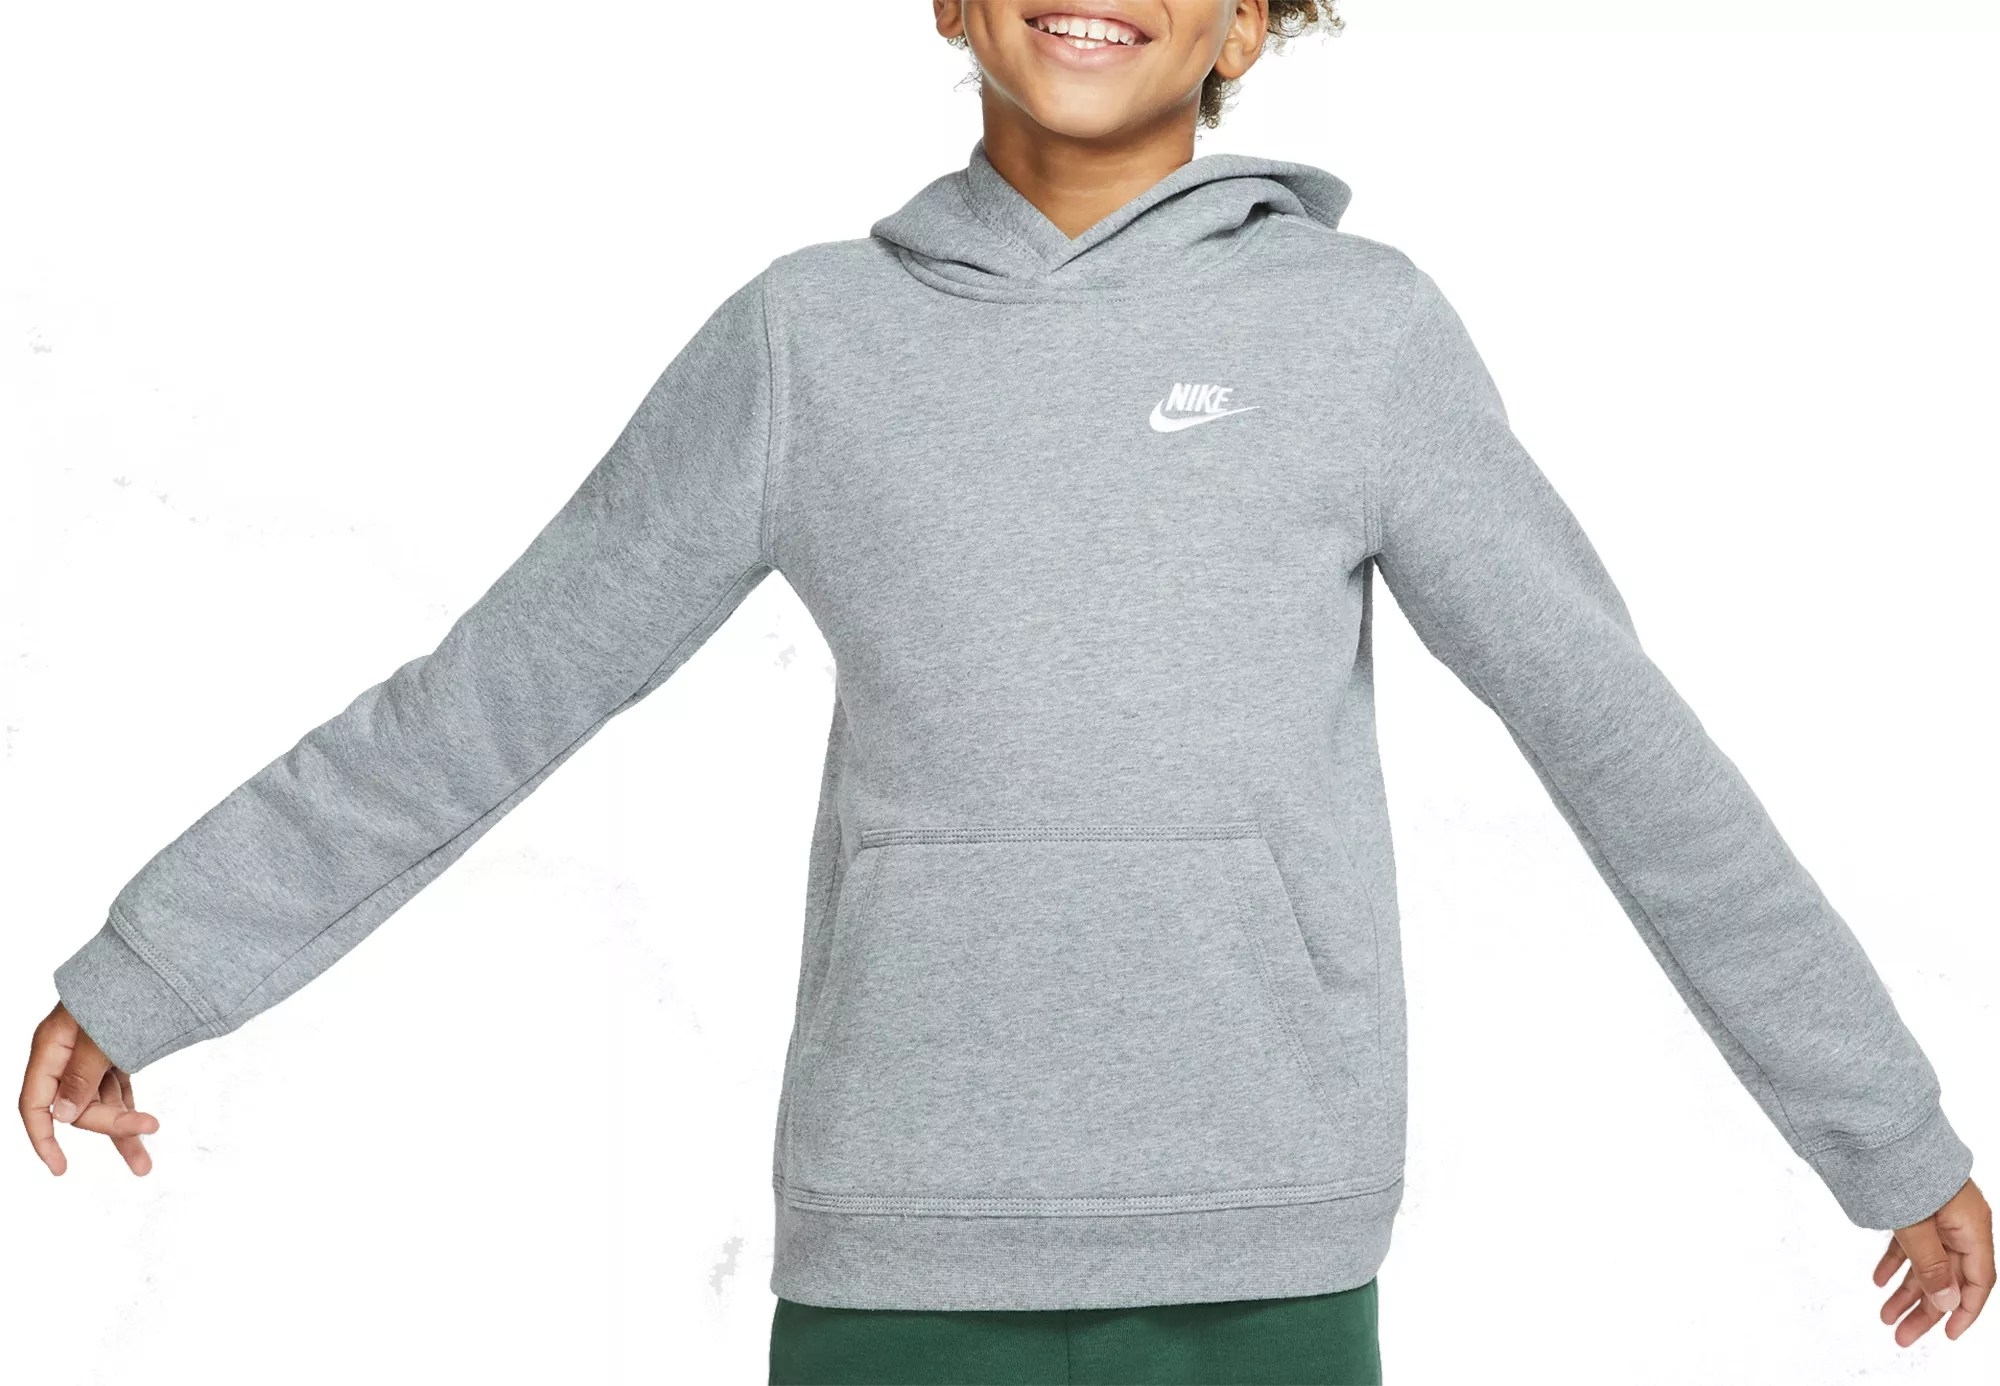 Nike Hoodie Carbon Heather Nike Boys Sportswear Club Cotton Hoodie